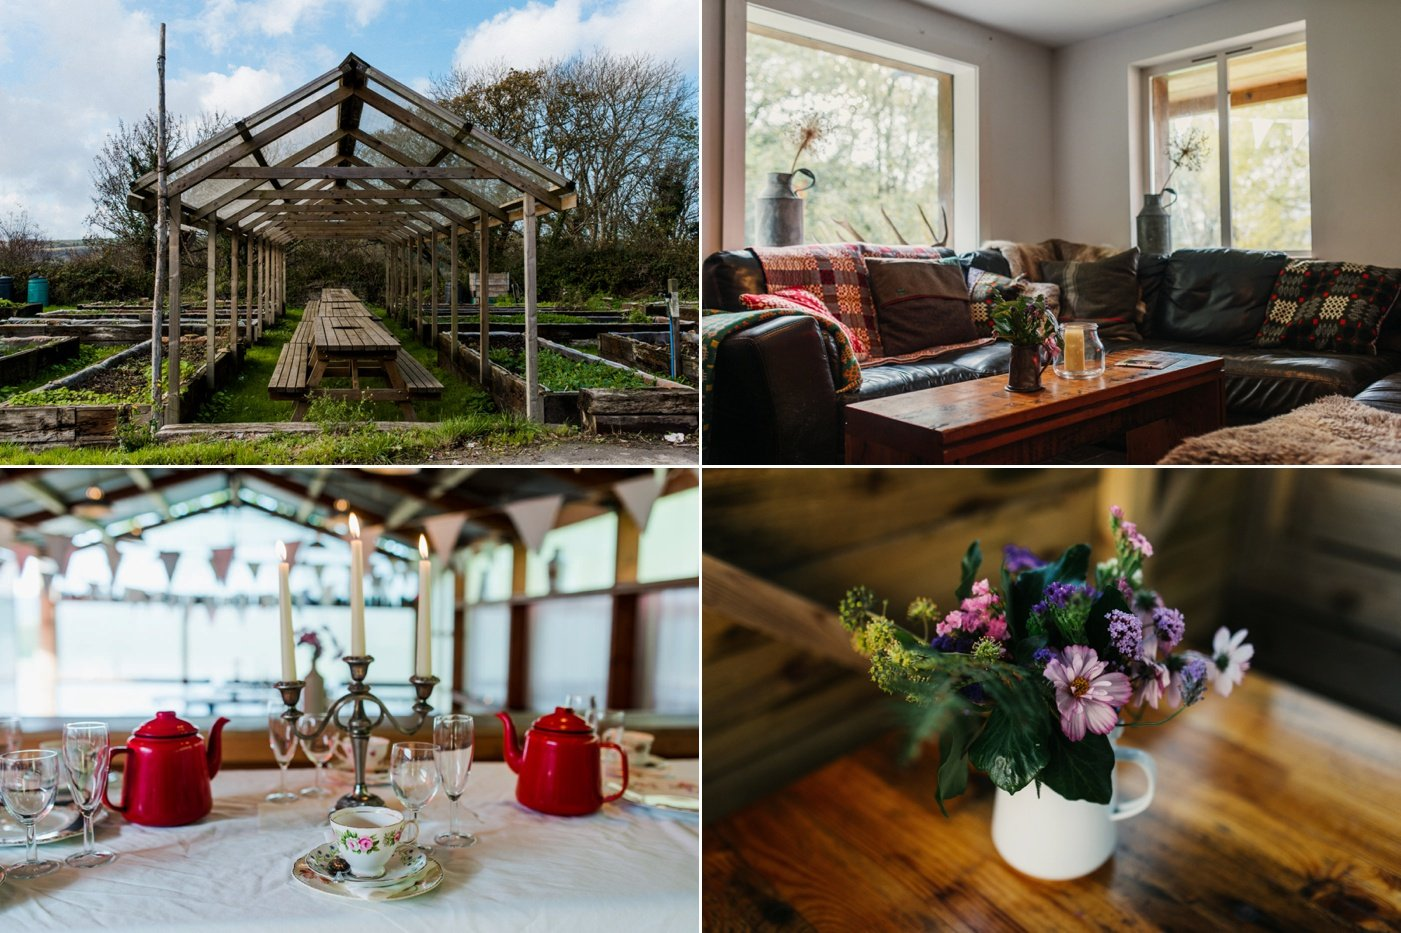 fforest wales wedding venue camping